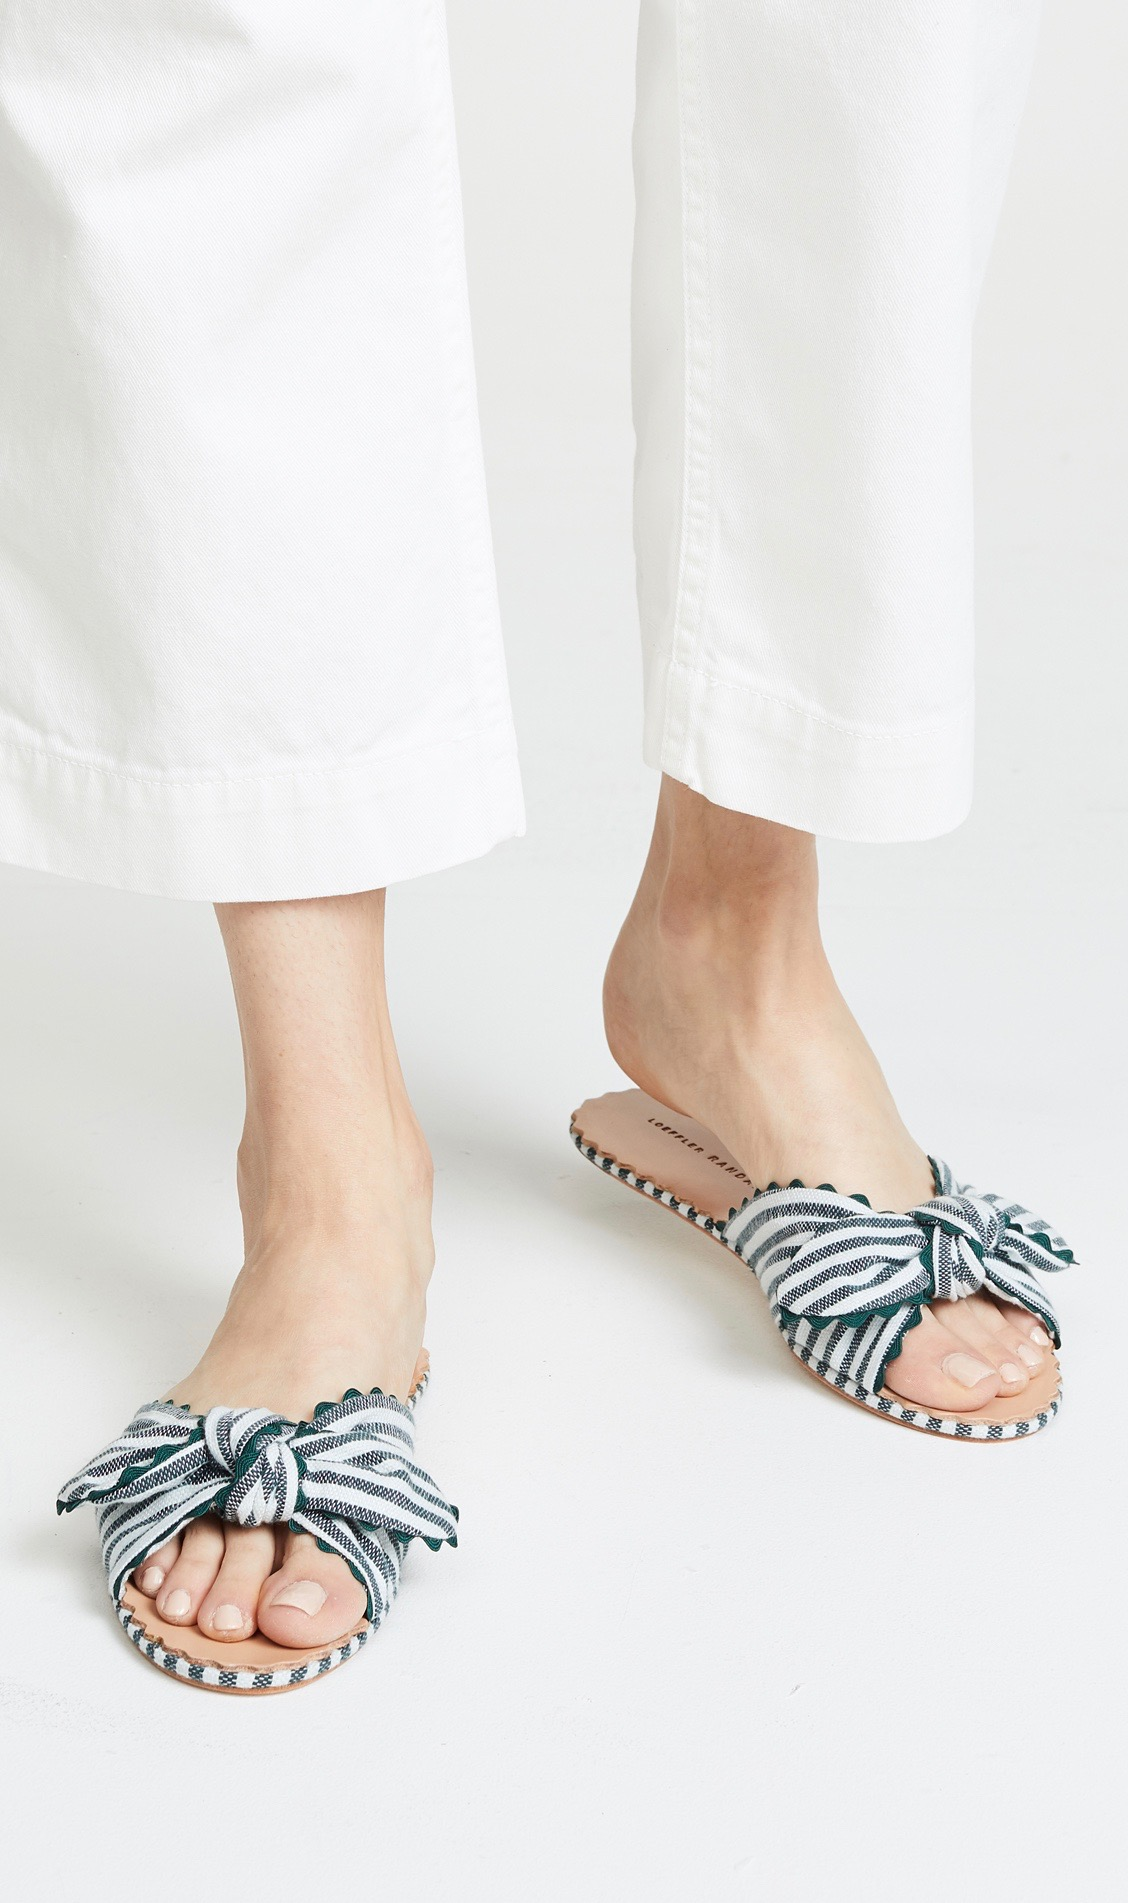 Striped Knotted Rickrack Slide Sandals, Loeffler Randall, Bow